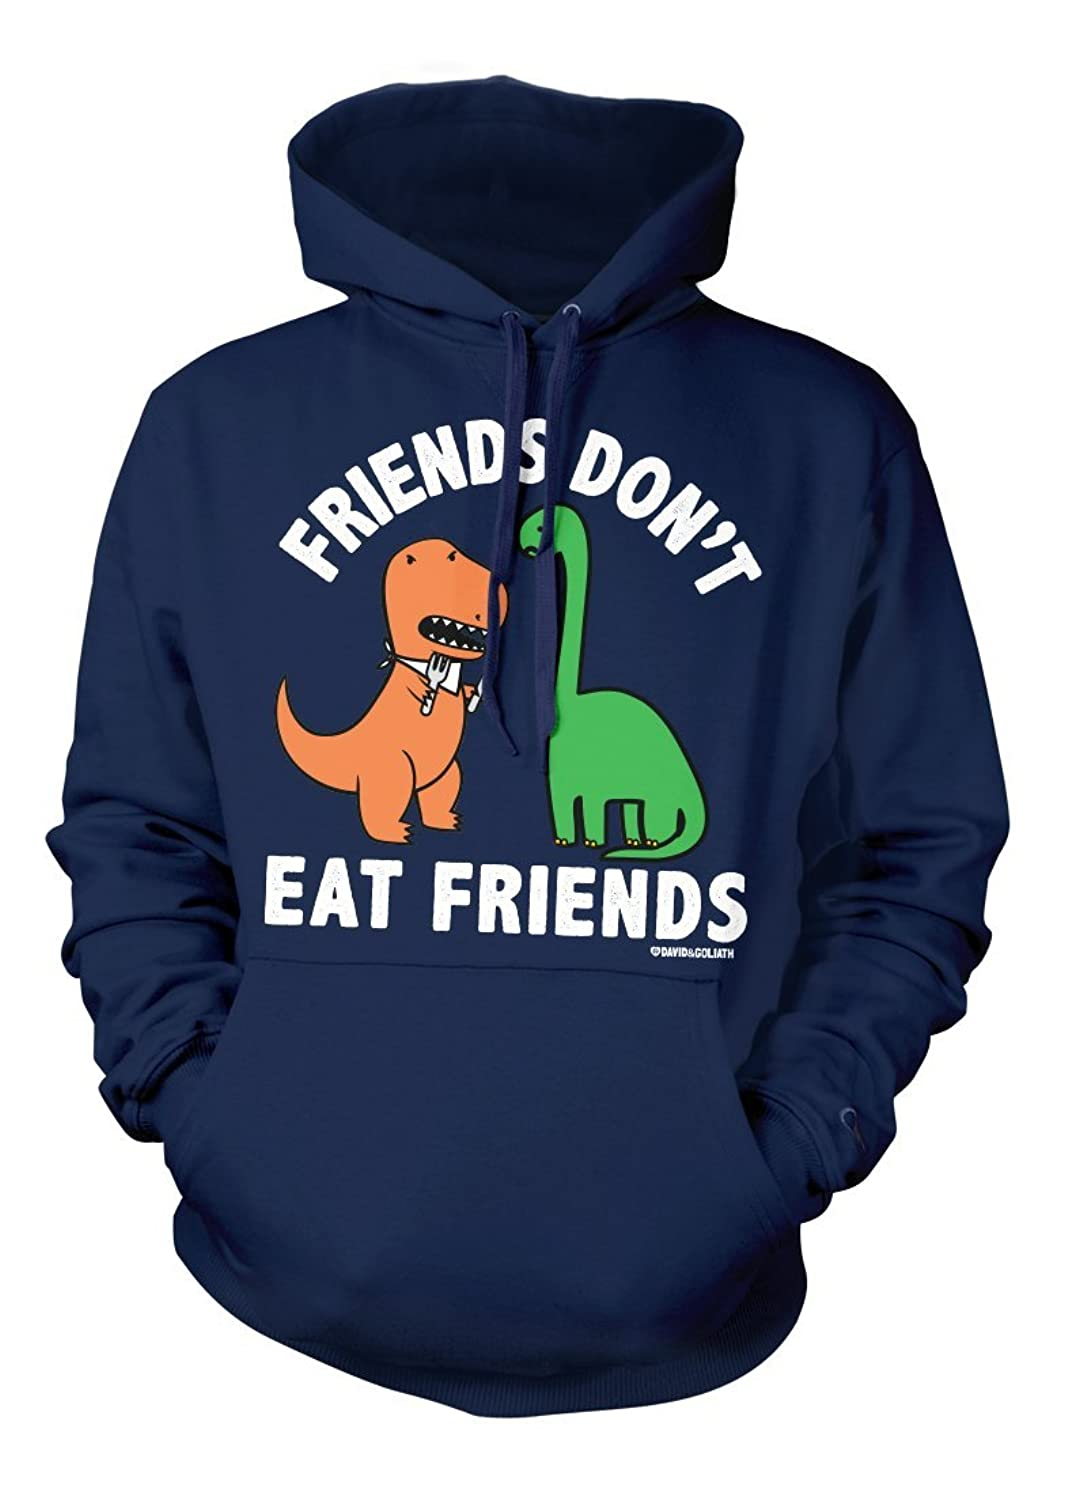 David and Goliath Eat Friends Unisex Hooded Sweatshirt